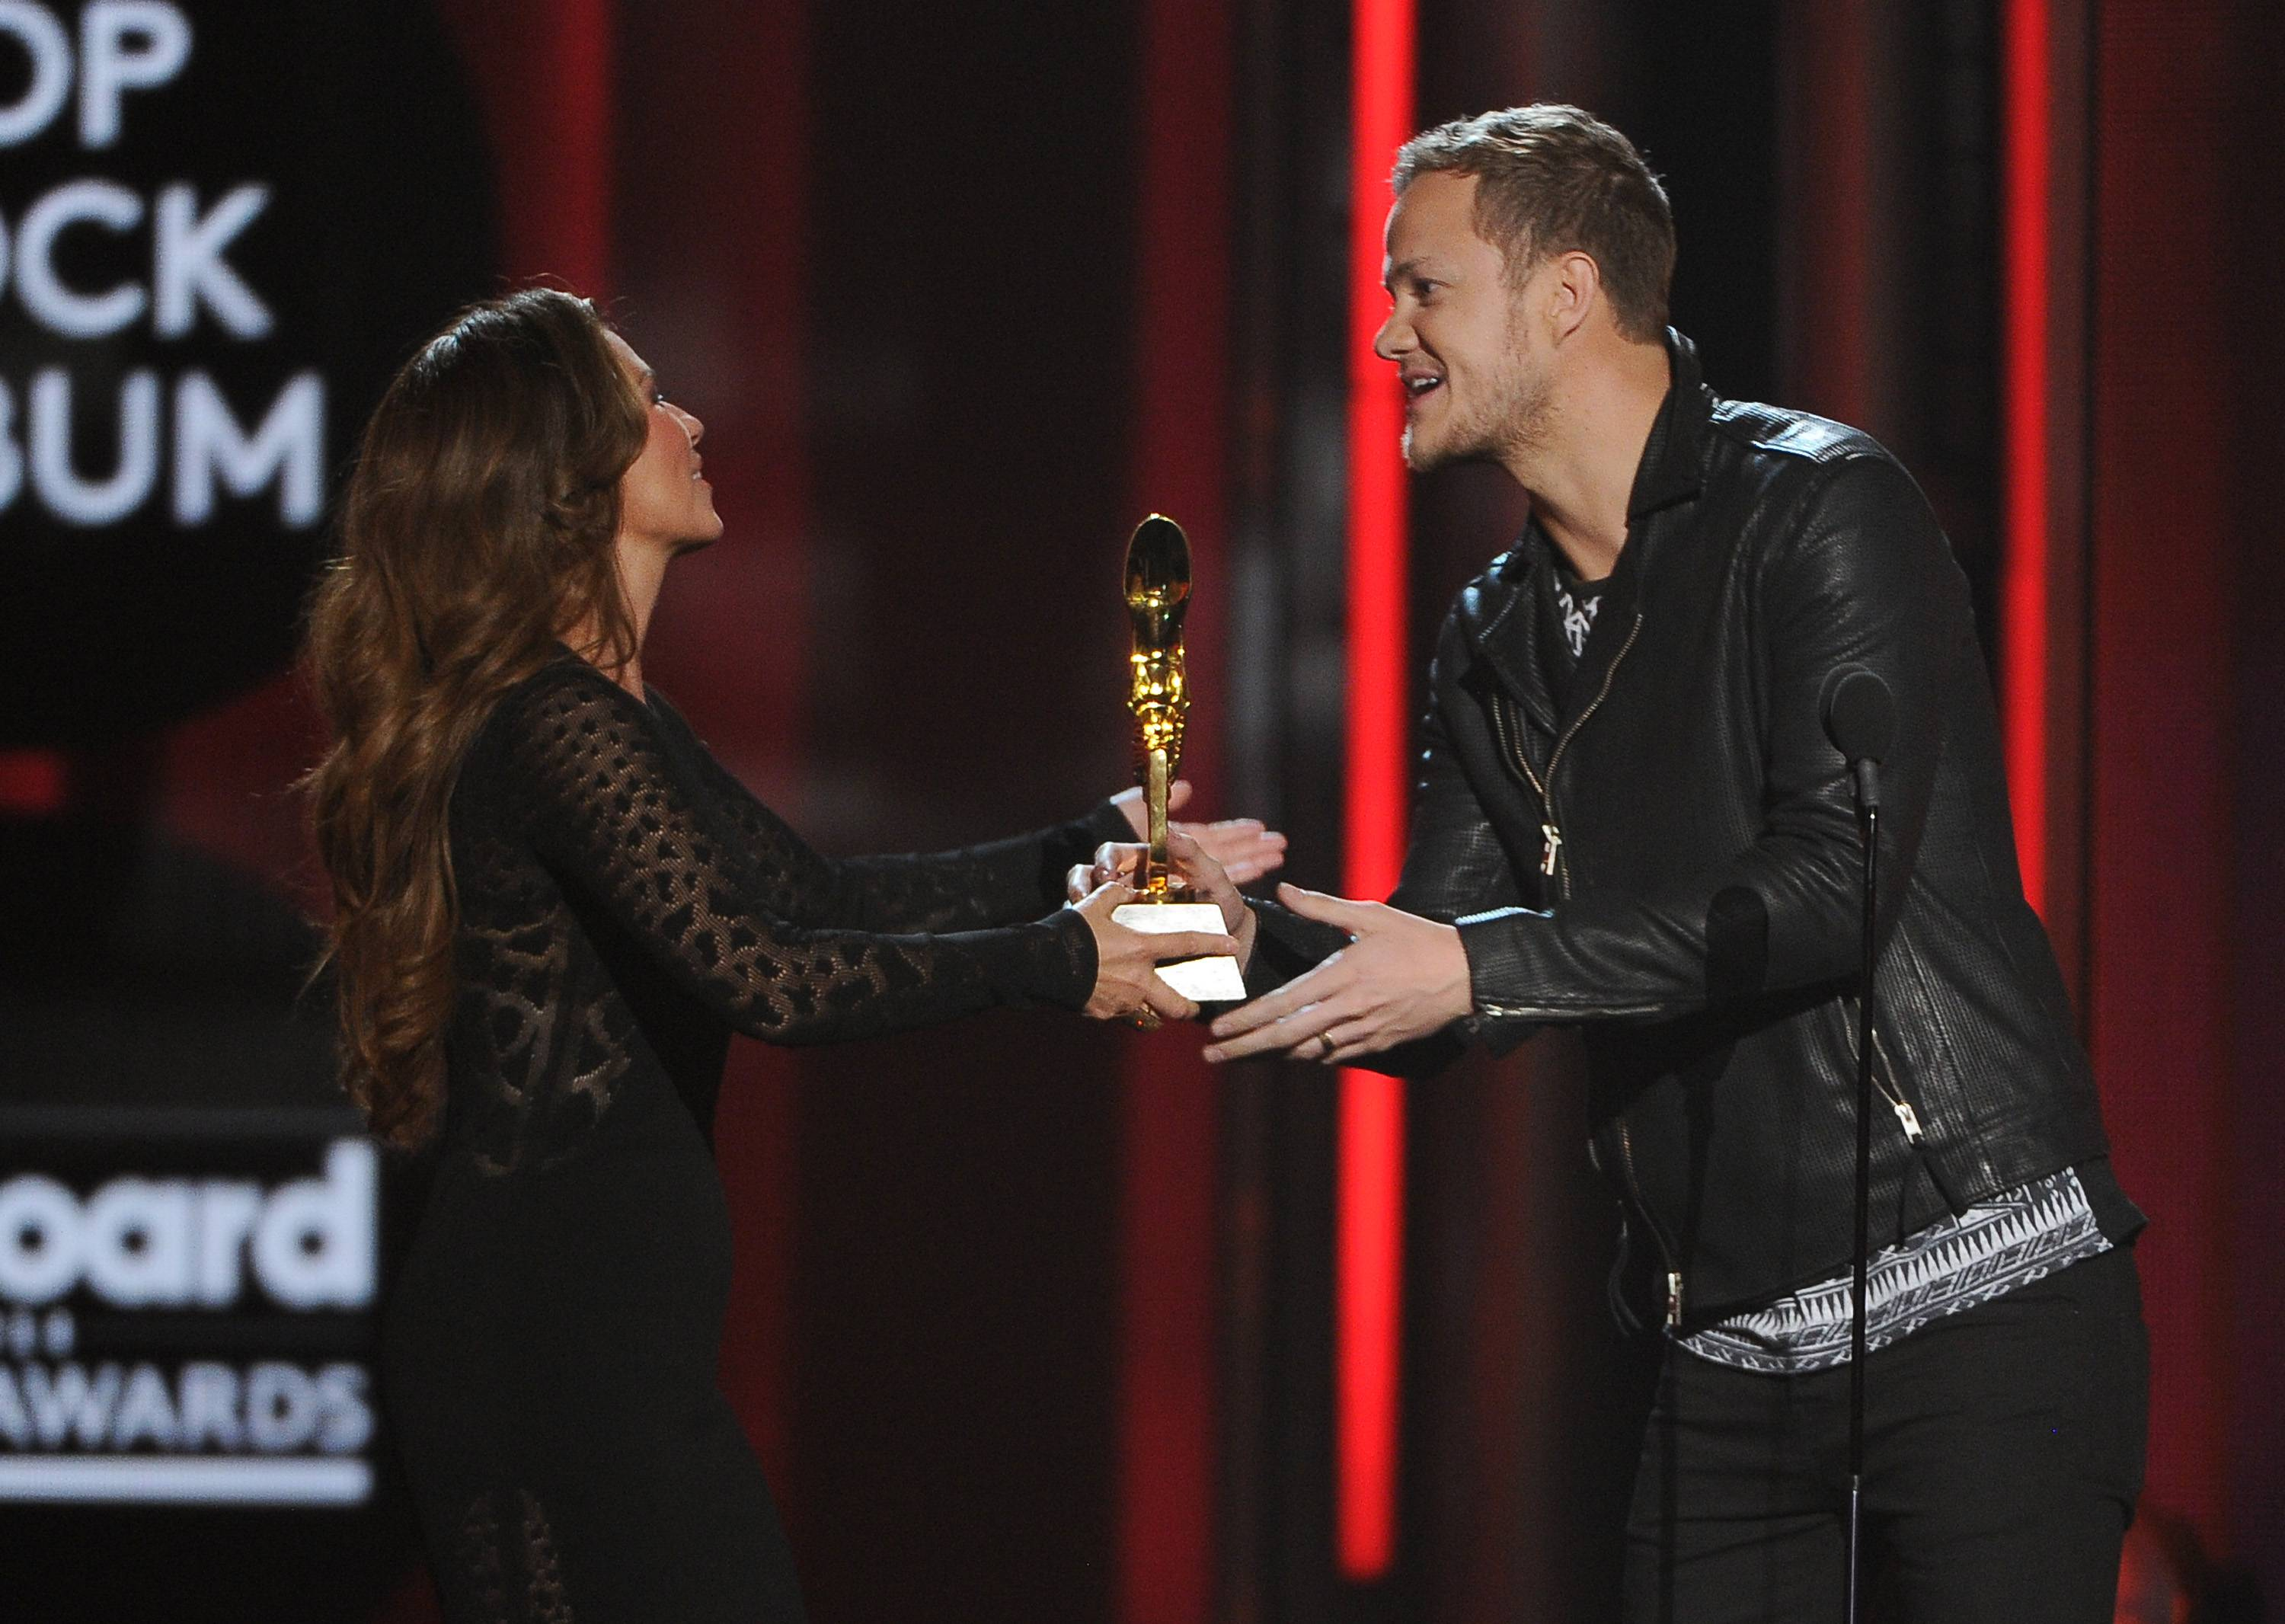 Shania Twain, left, presents the award for top rock album to Dan Reynolds, of the musical group Imagine Dragons,  at the Billboard Music Awards at the MGM Grand Garden Arena on Sunday, May 18, 2014, in Las Vegas.